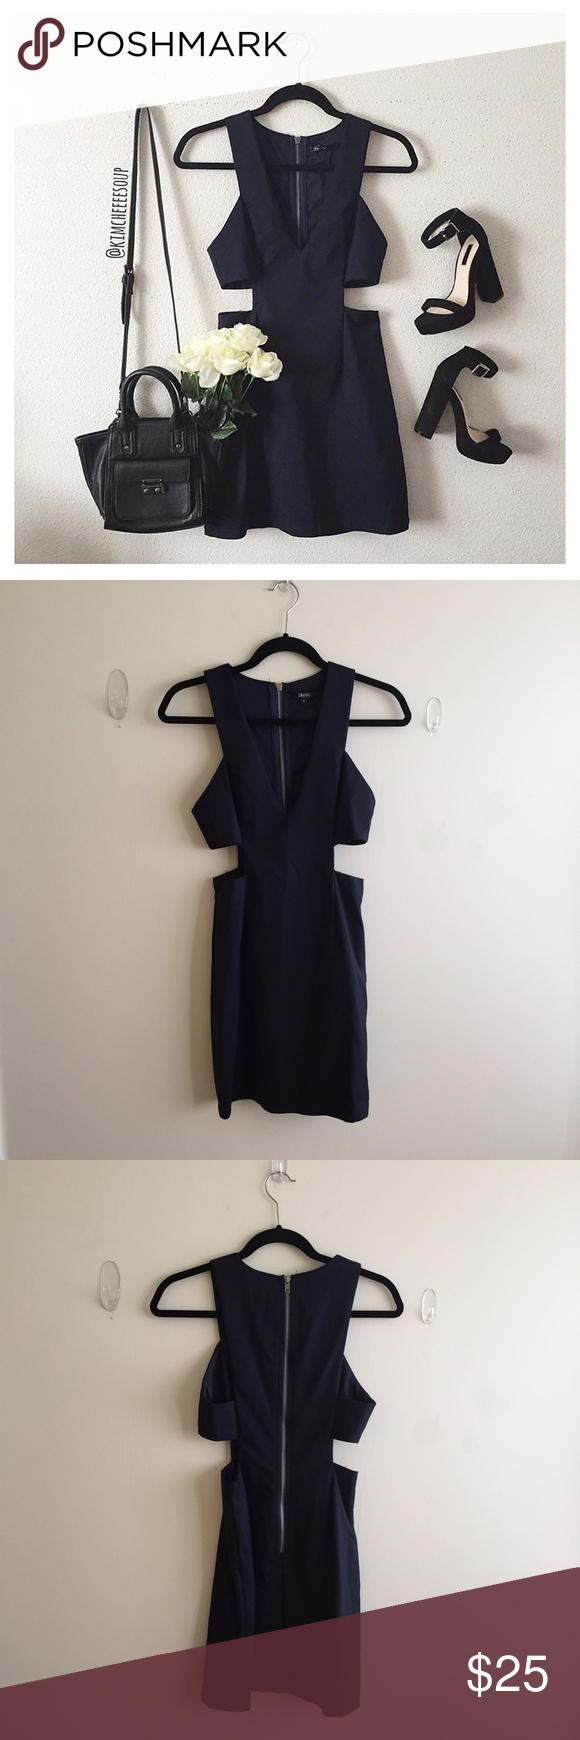 Stelly Clothing Navy Dress Super cute for a night out, not LF. NWOT LF Dresses Mini